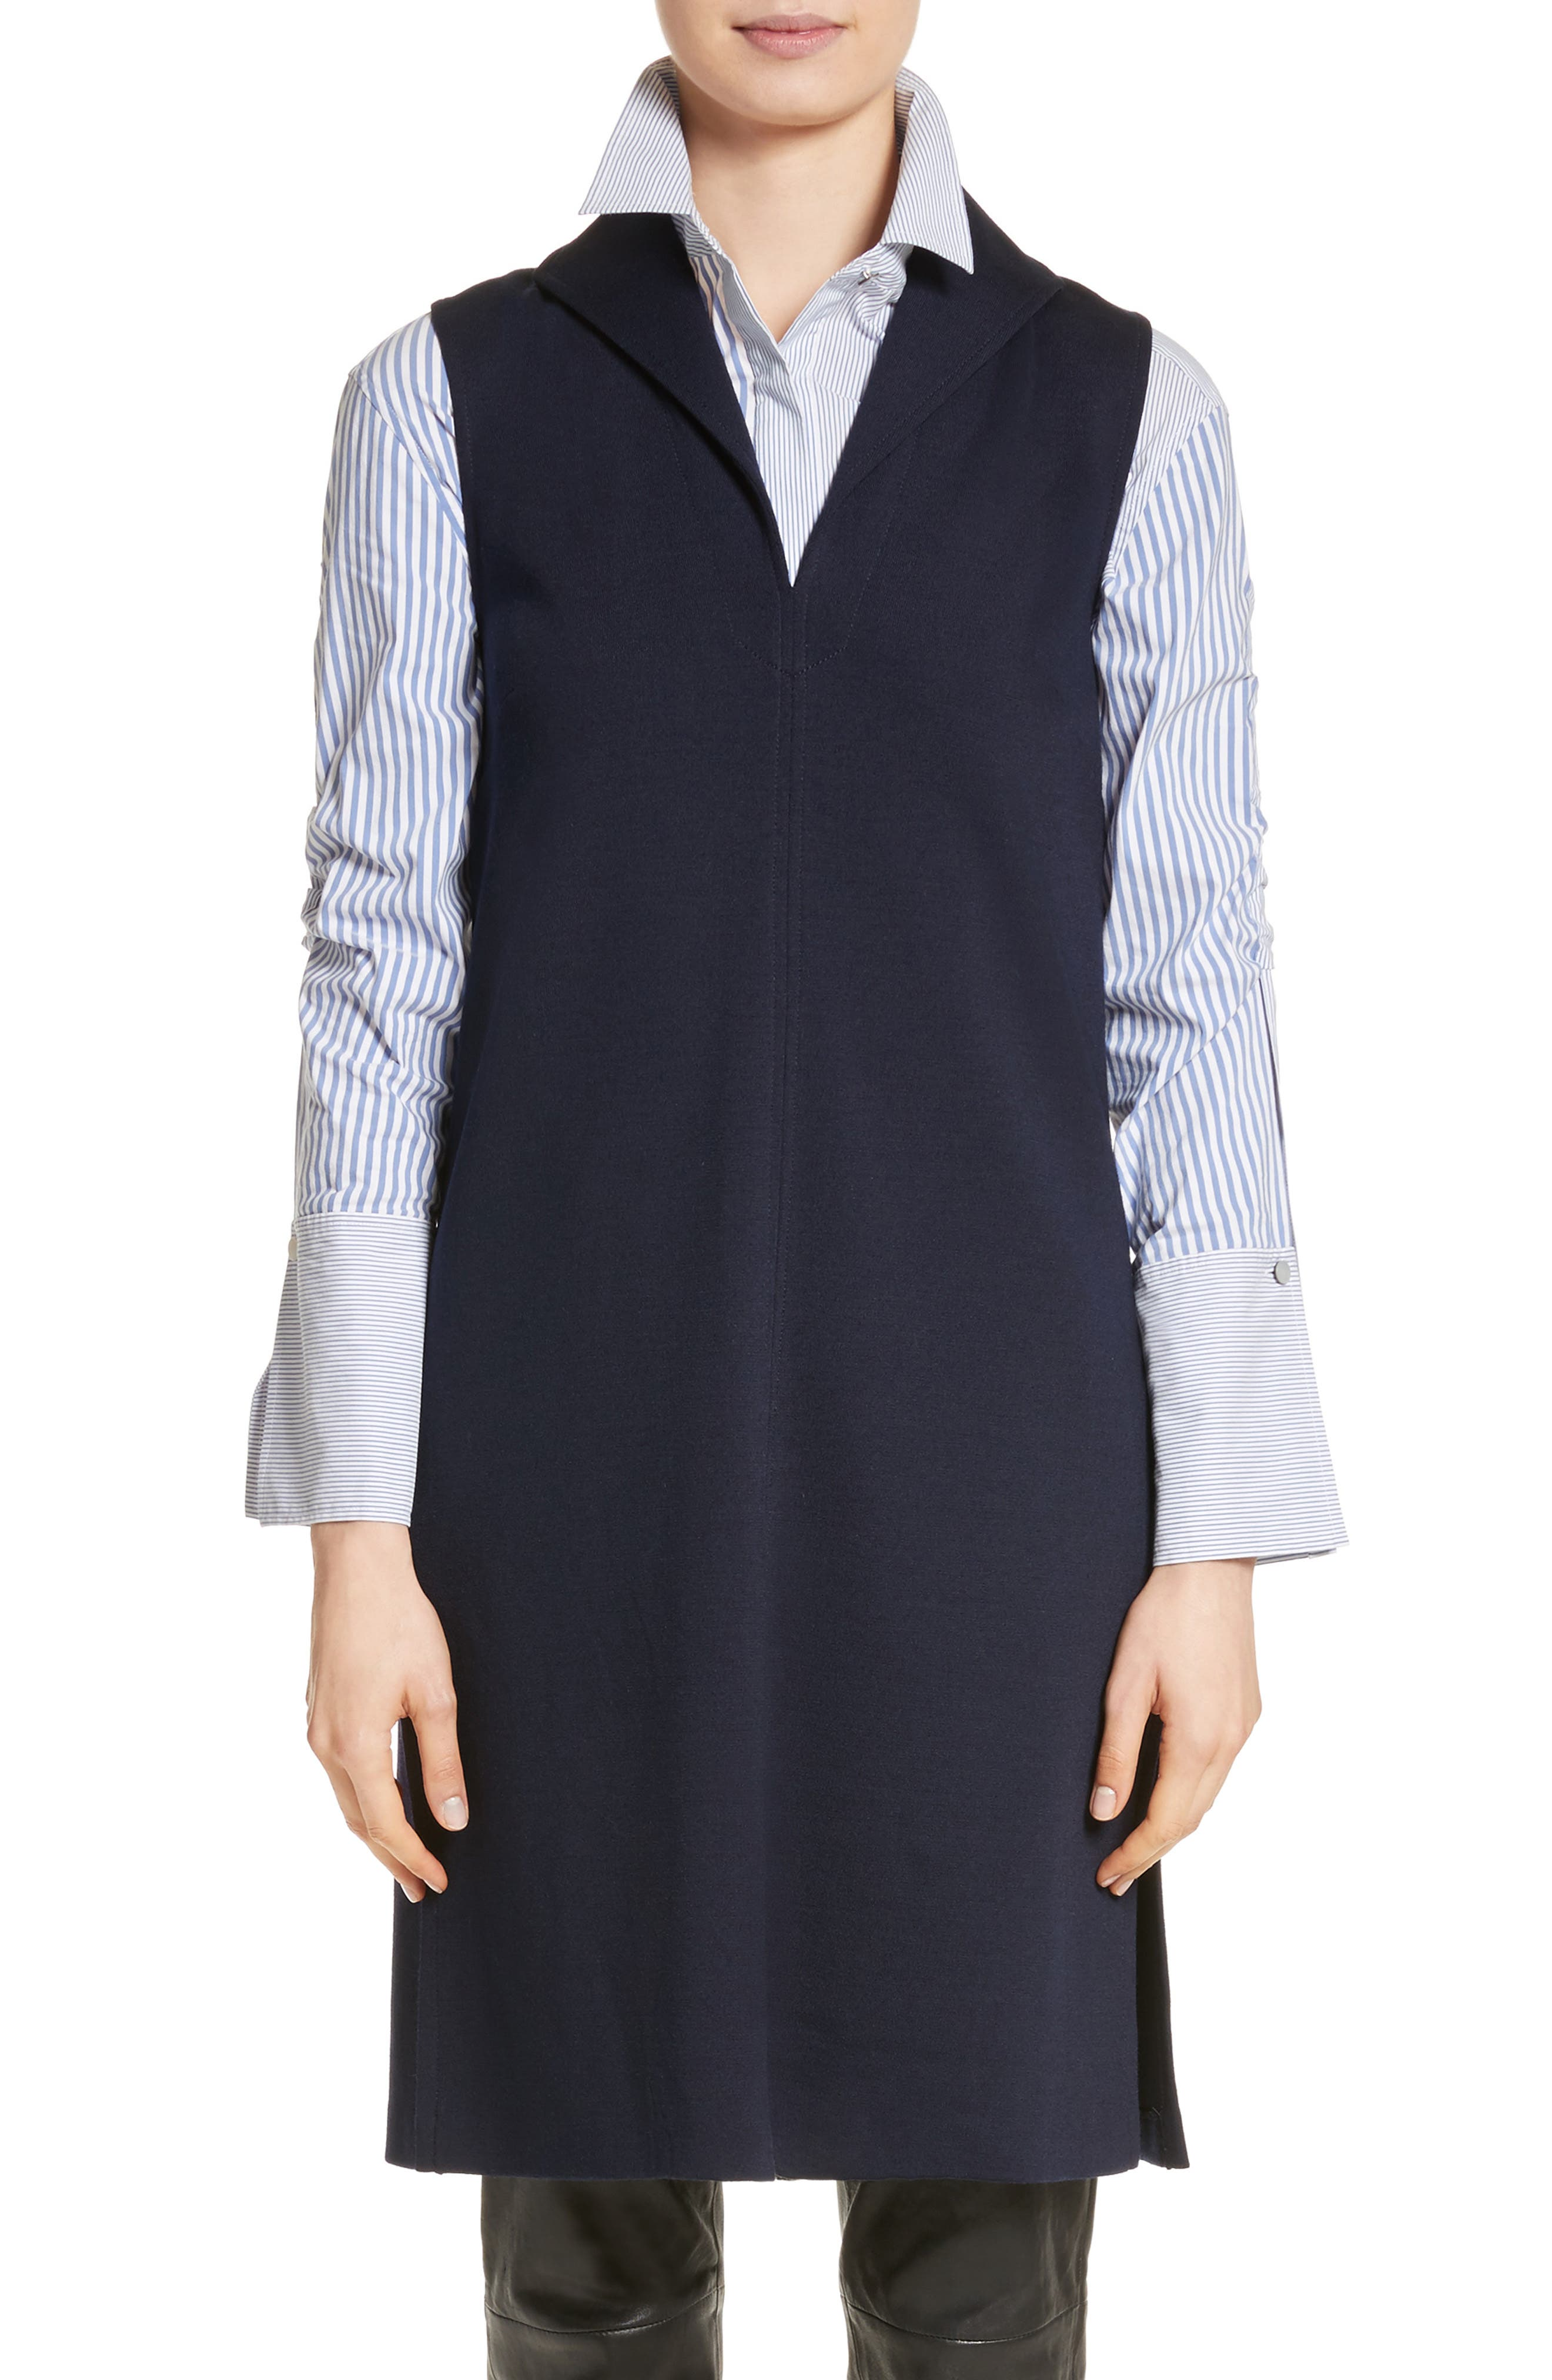 St John Collection Milano Knit Collared Tunic,                         Main,                         color, Navy